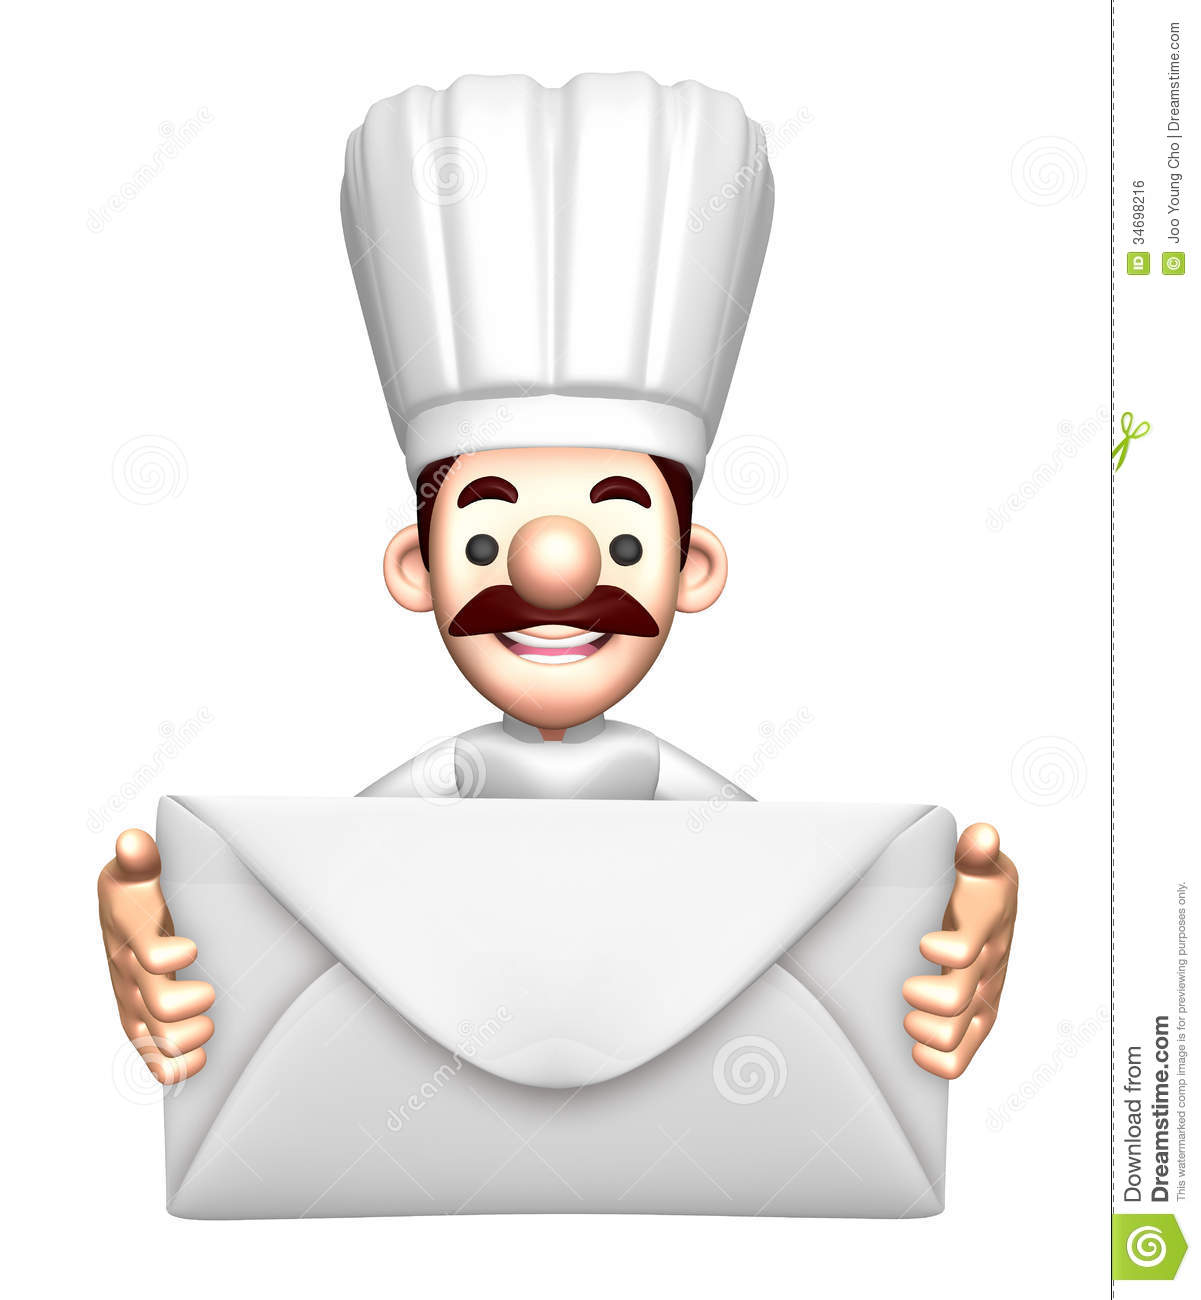 Character Design Letter : D chef mascot holding a large letter royalty free stock